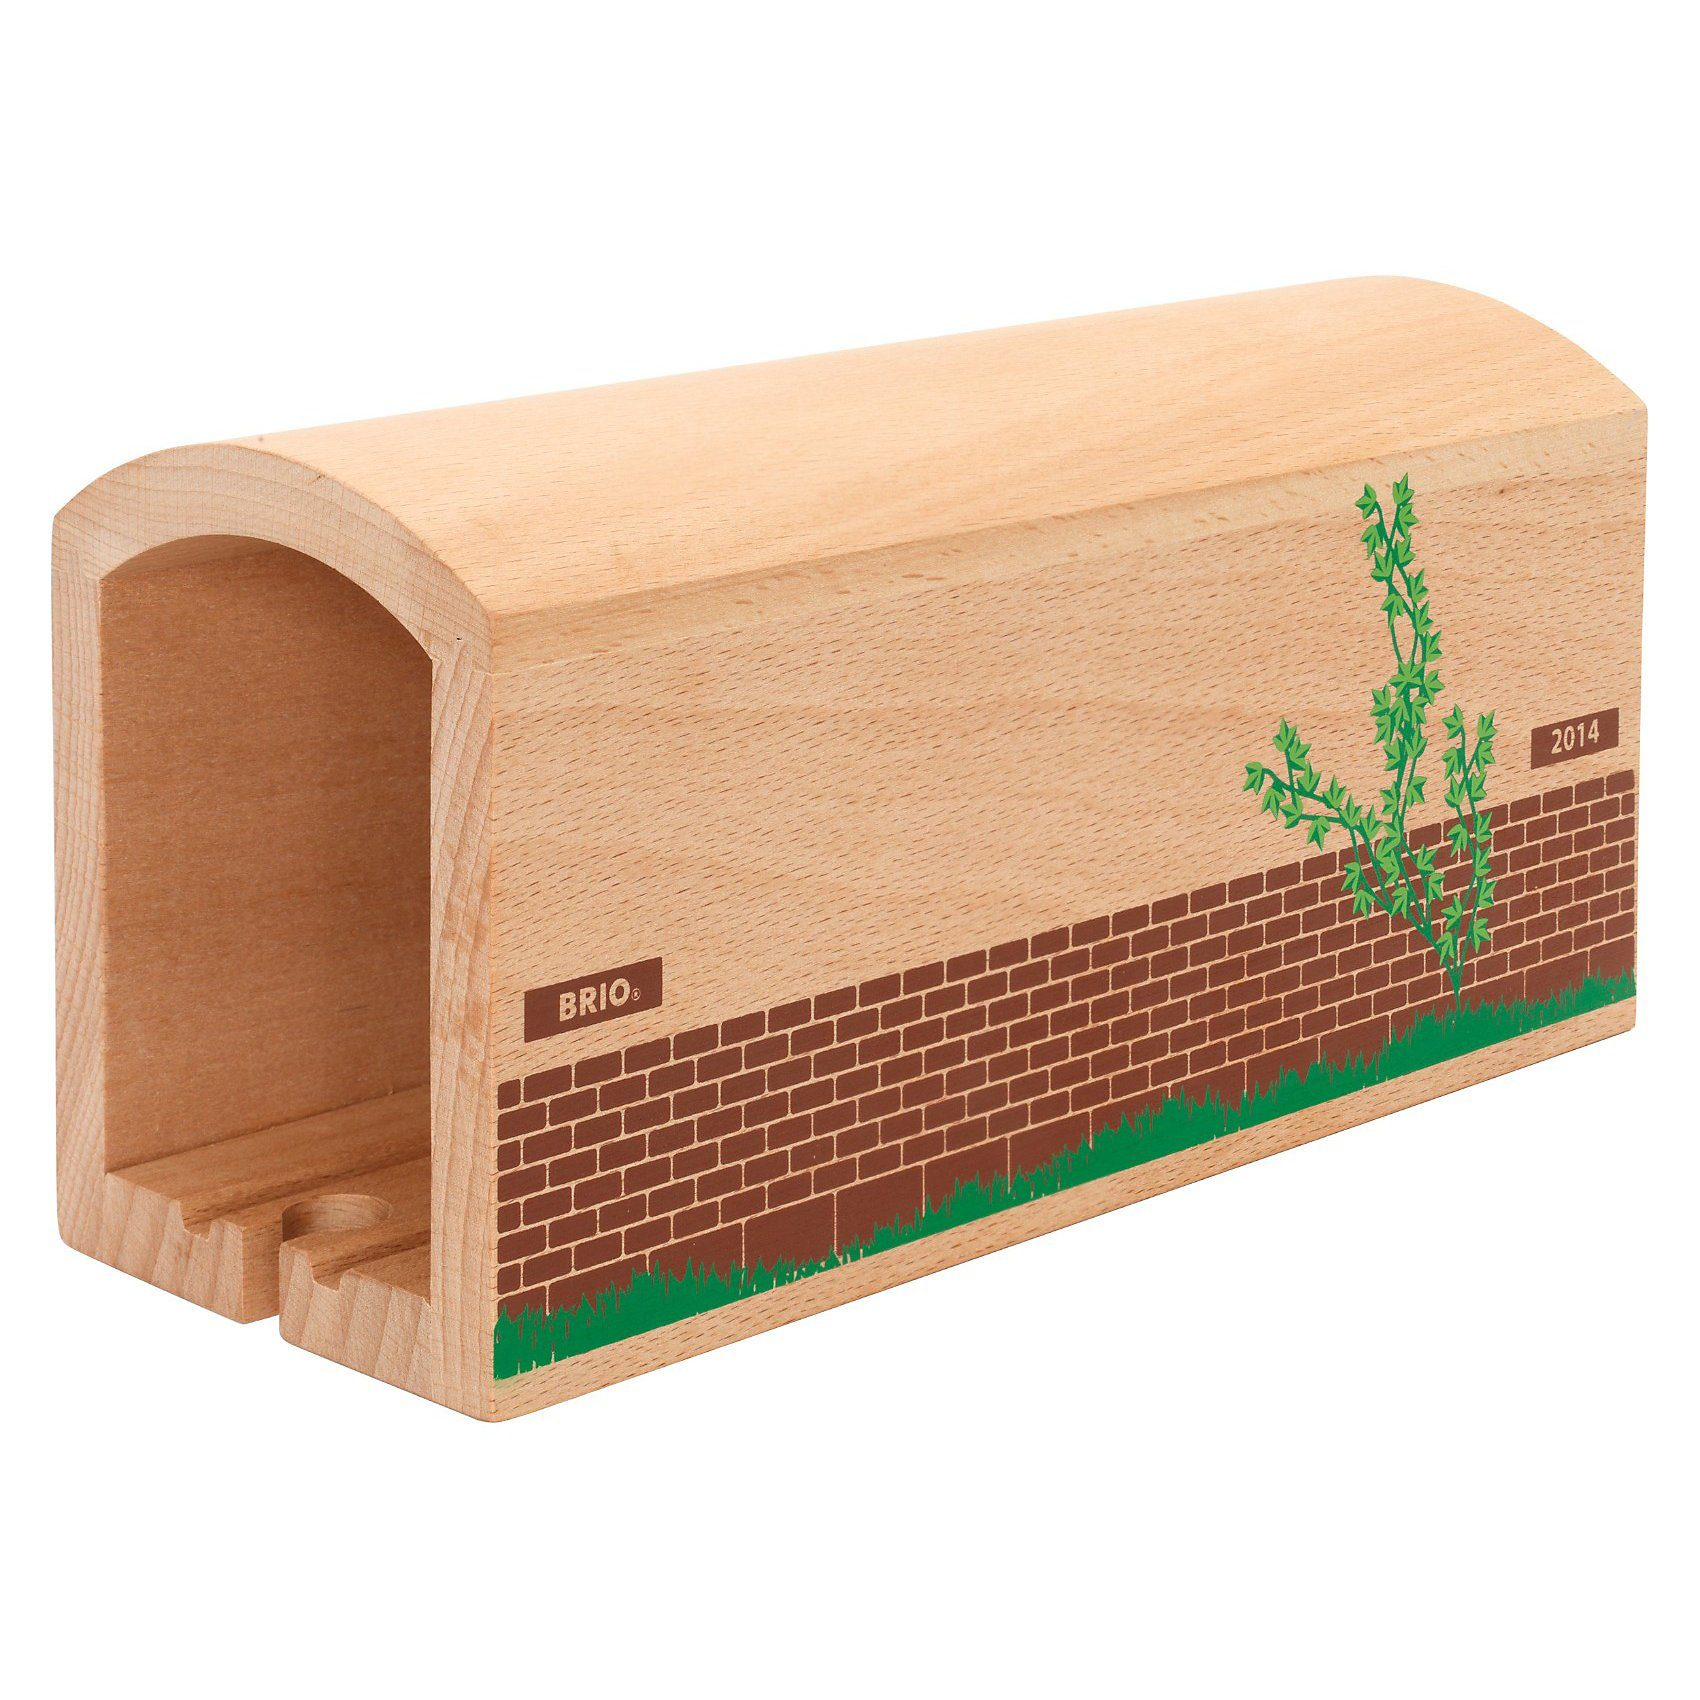 BRIO Hoher Holz-Tunnel